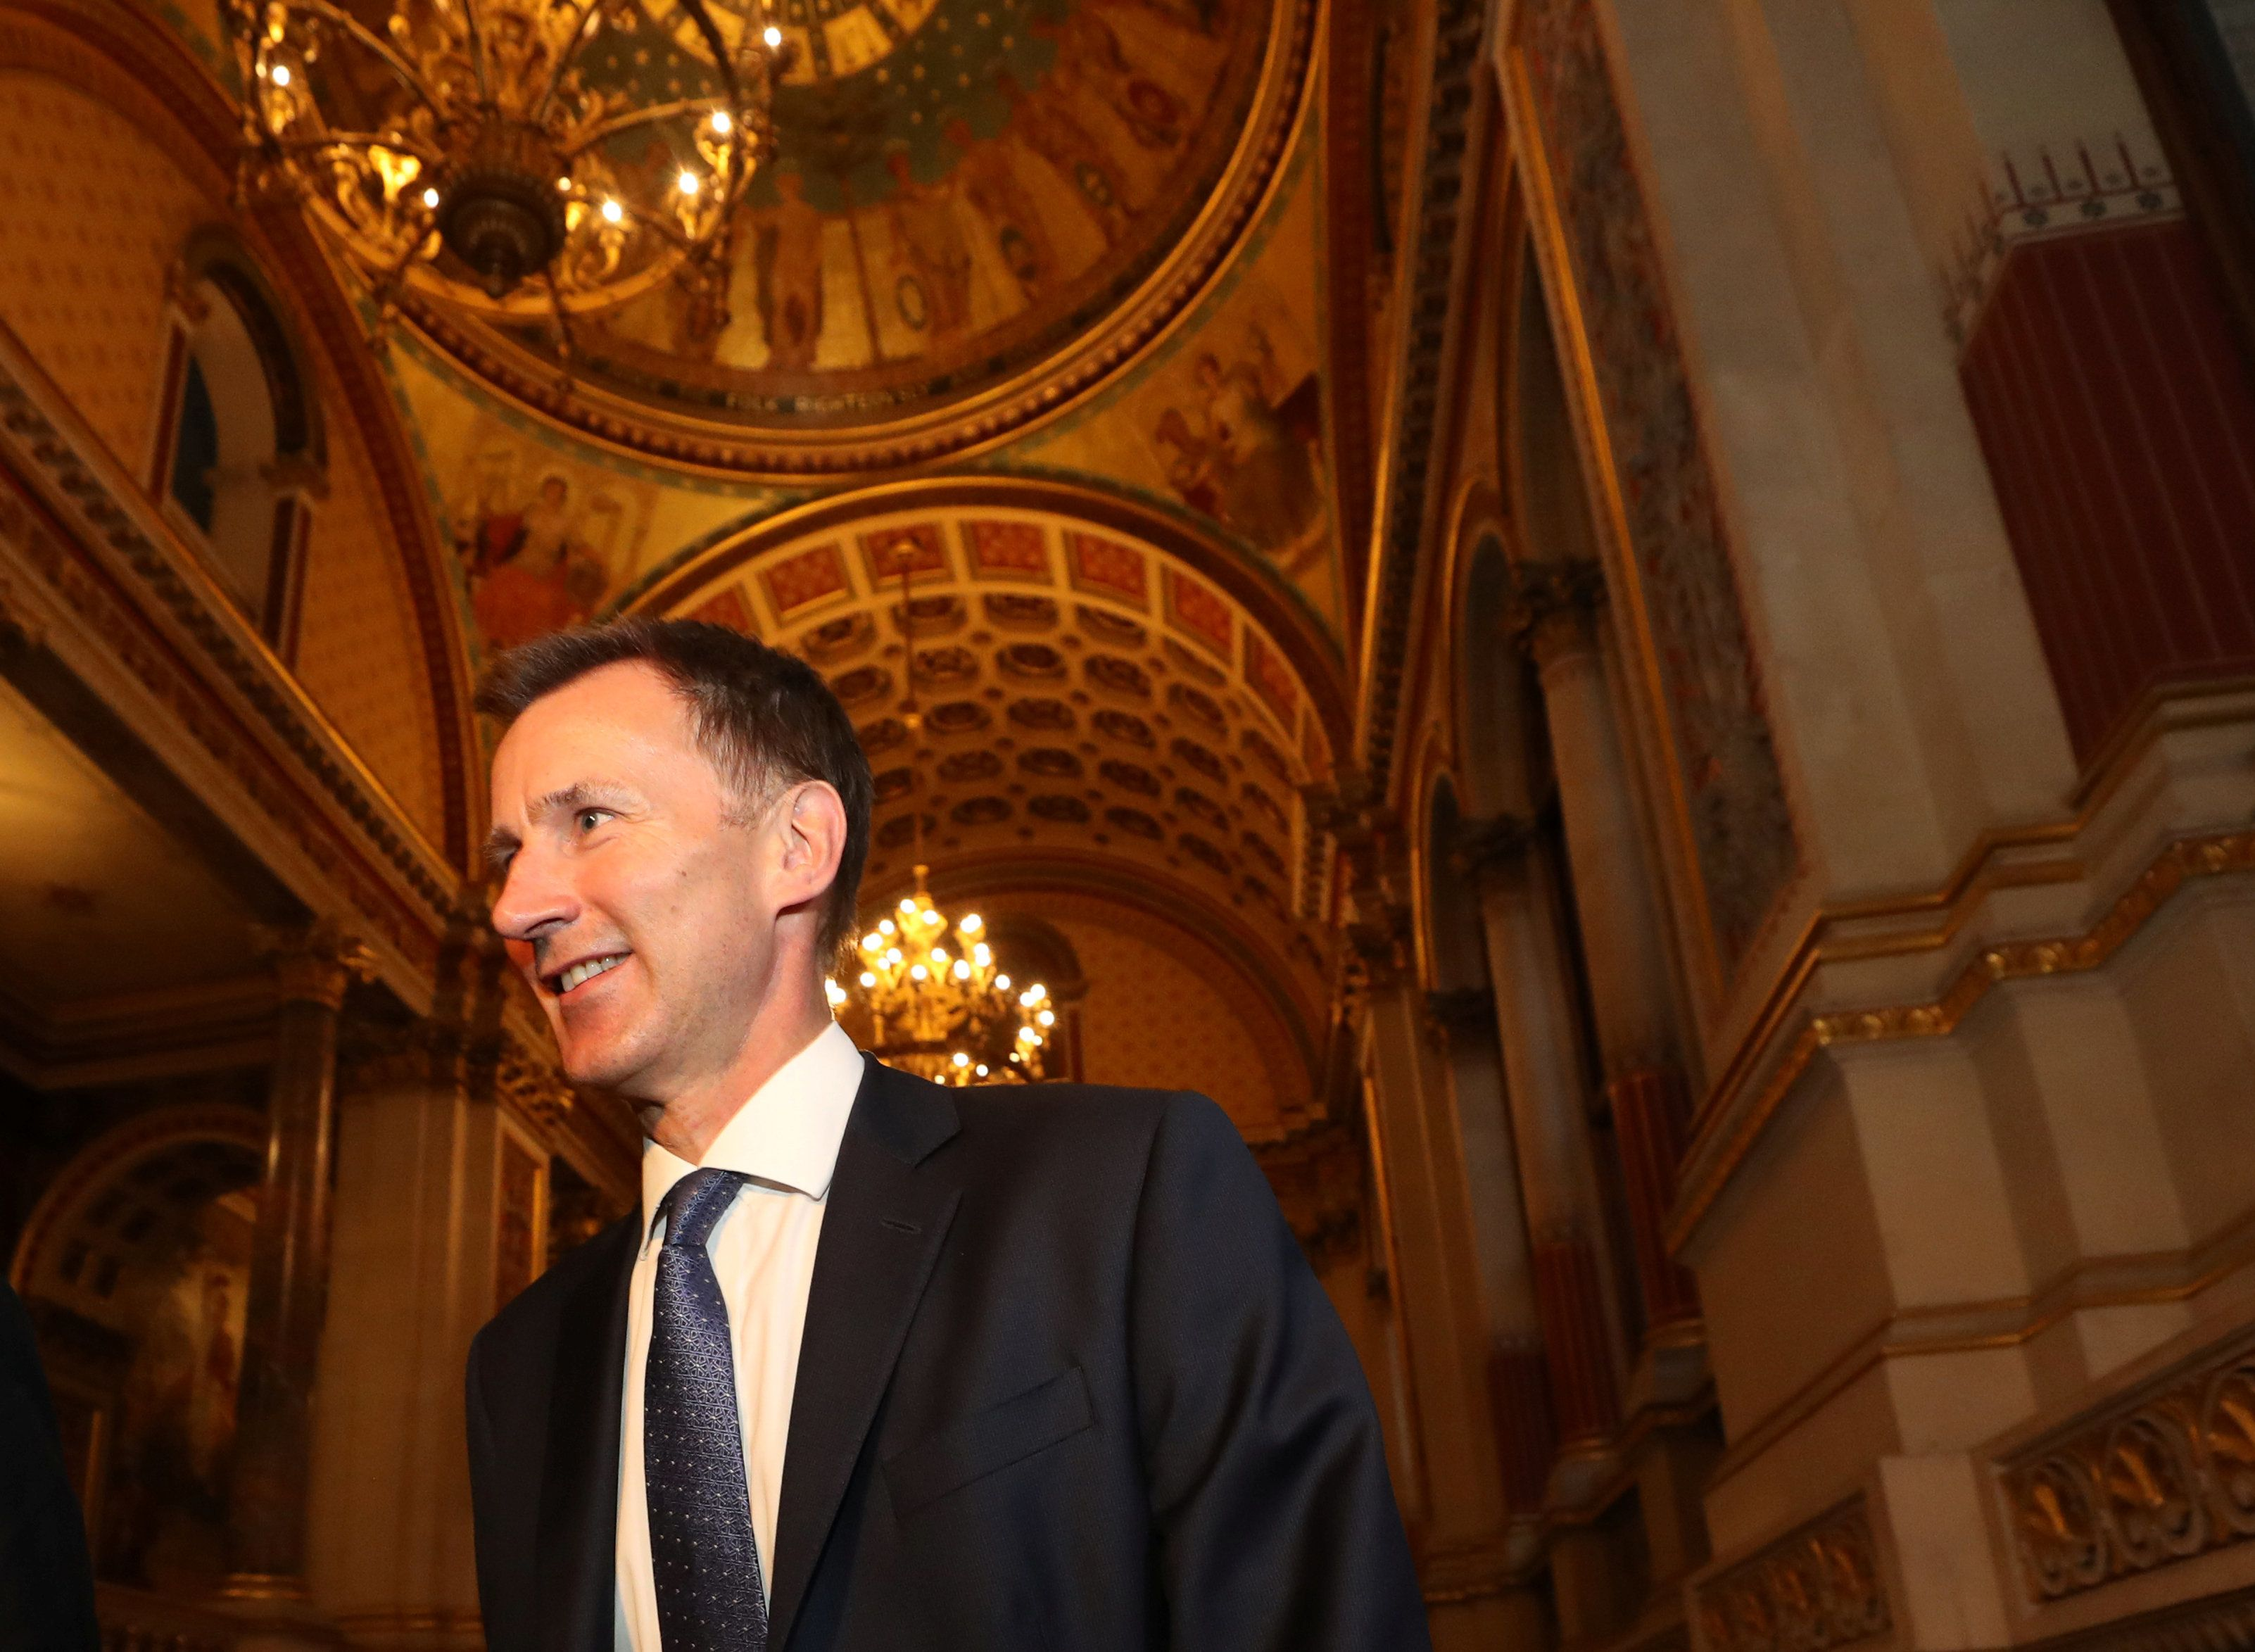 Jeremy Hunt Is New Foreign Secretary After Boris Johnson Quits Over